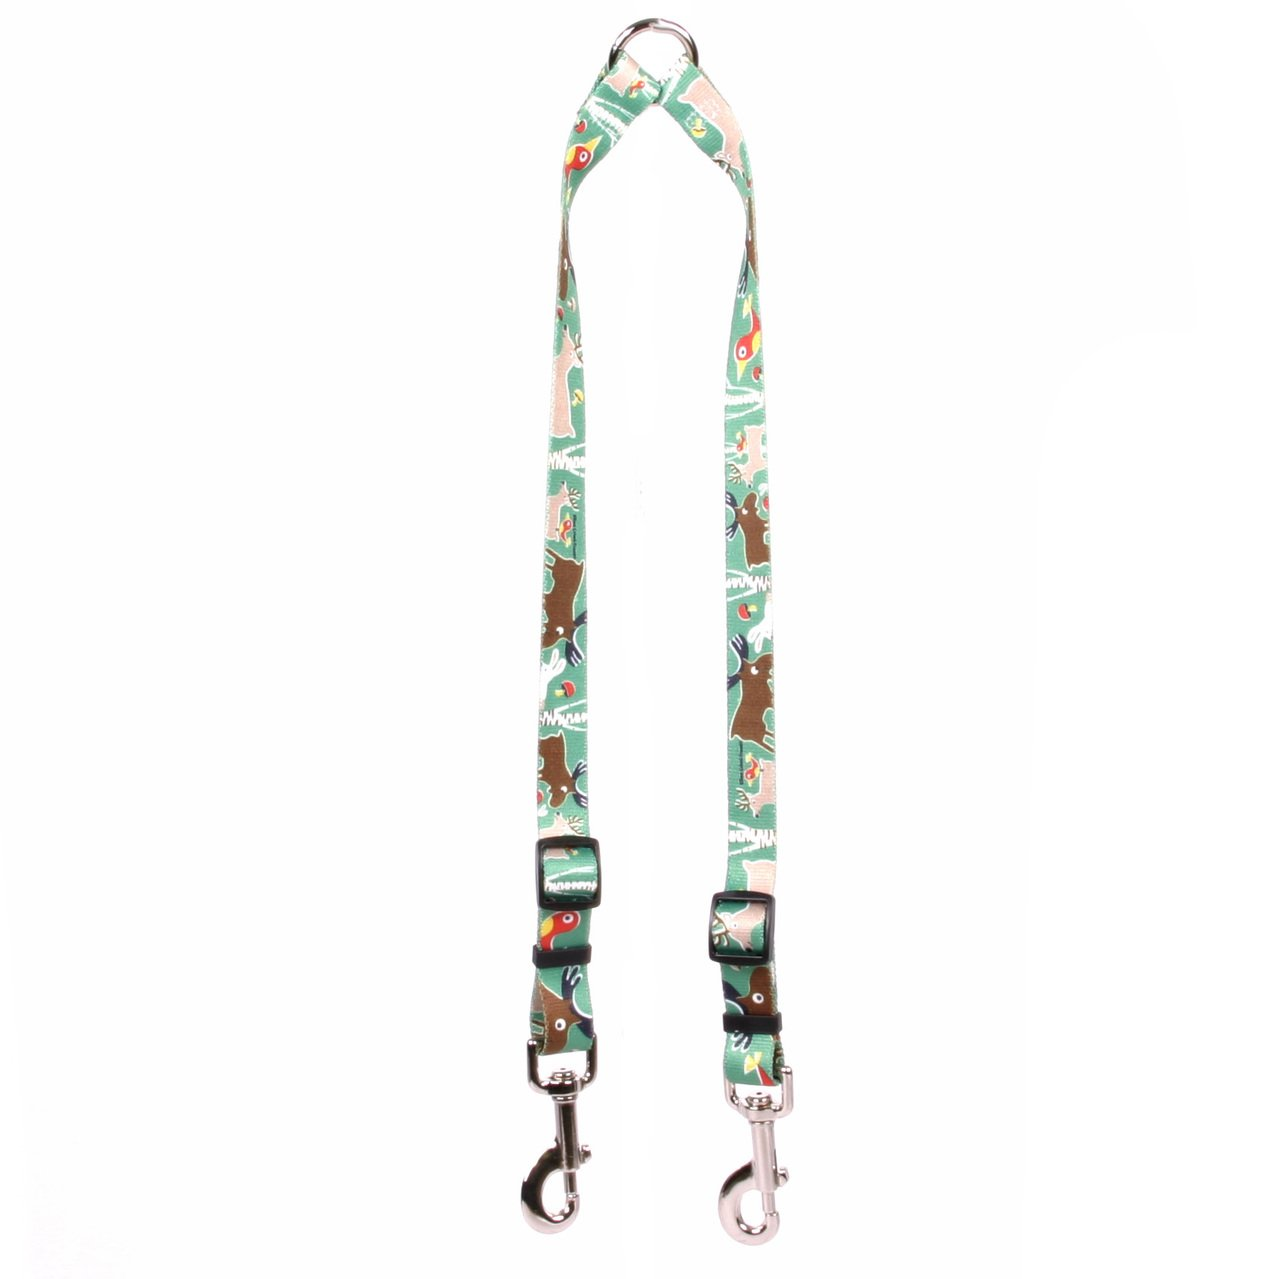 Yellow Dog Design Woodland Friends Coupler Dog Leash-Size Medium-3/4 inch Wide and 12 to 20 inches Long by Yellow Dog Design